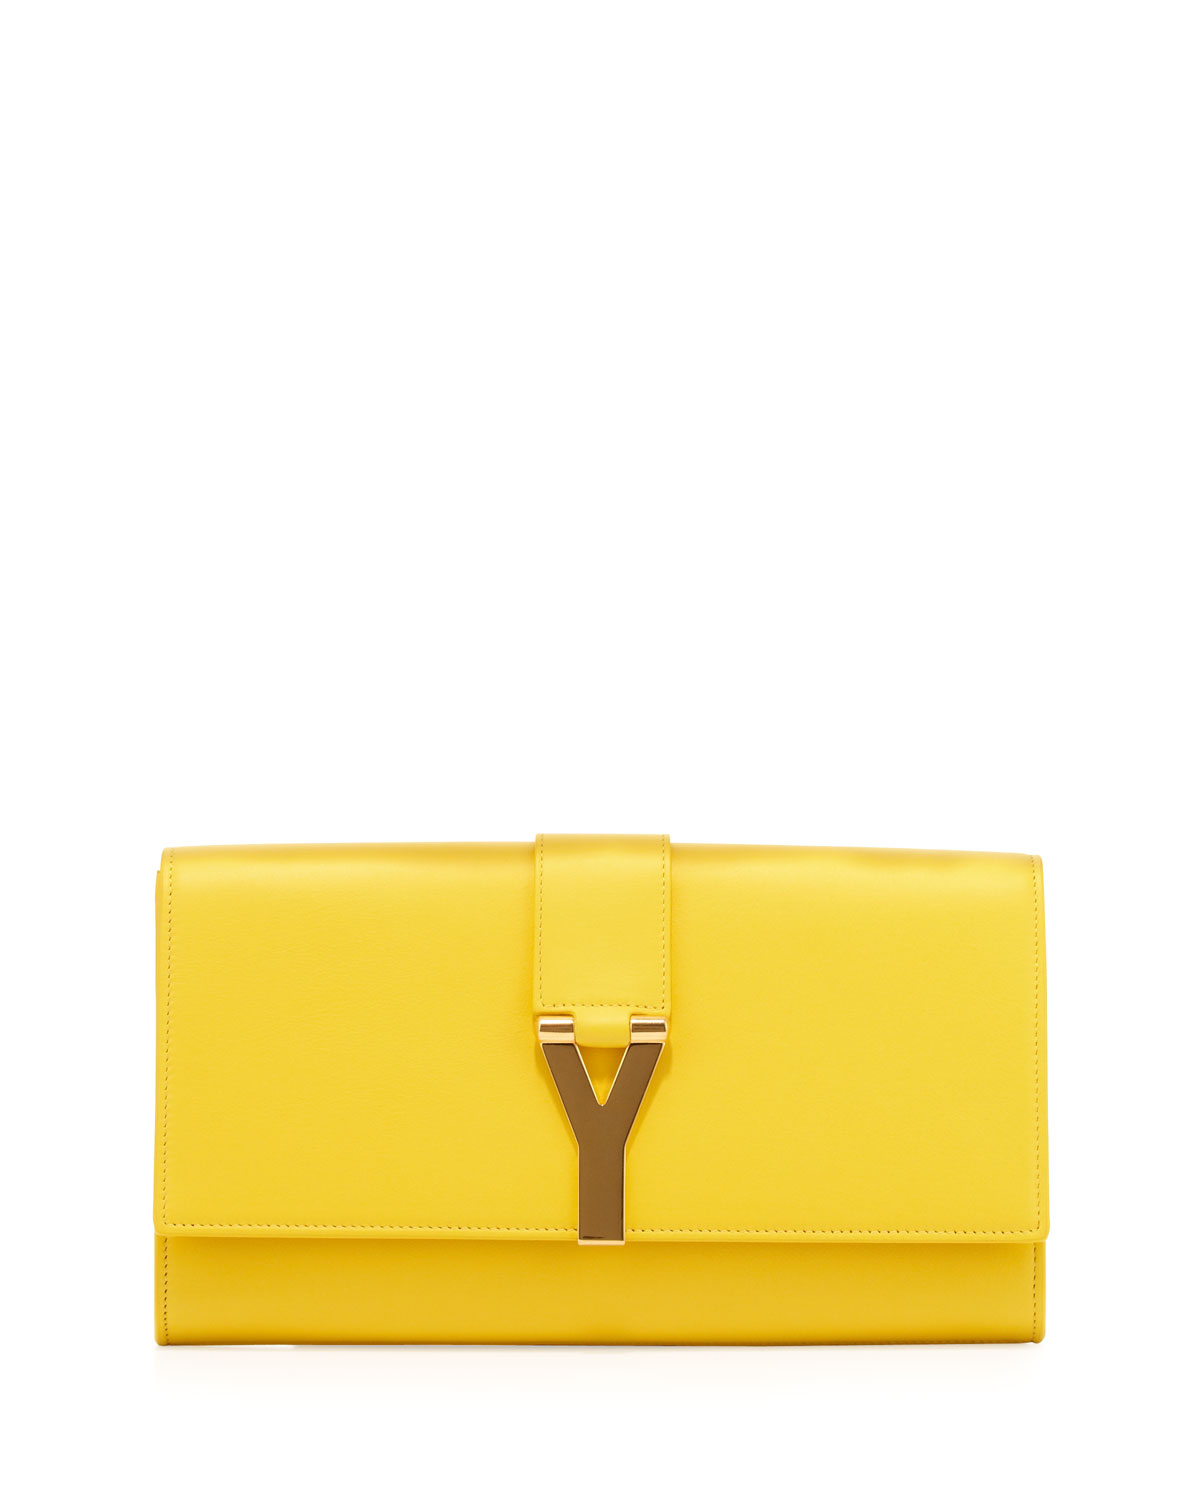 Lyst Saint Laurent Y Ligne Clutch Bag Yellow In Yellow